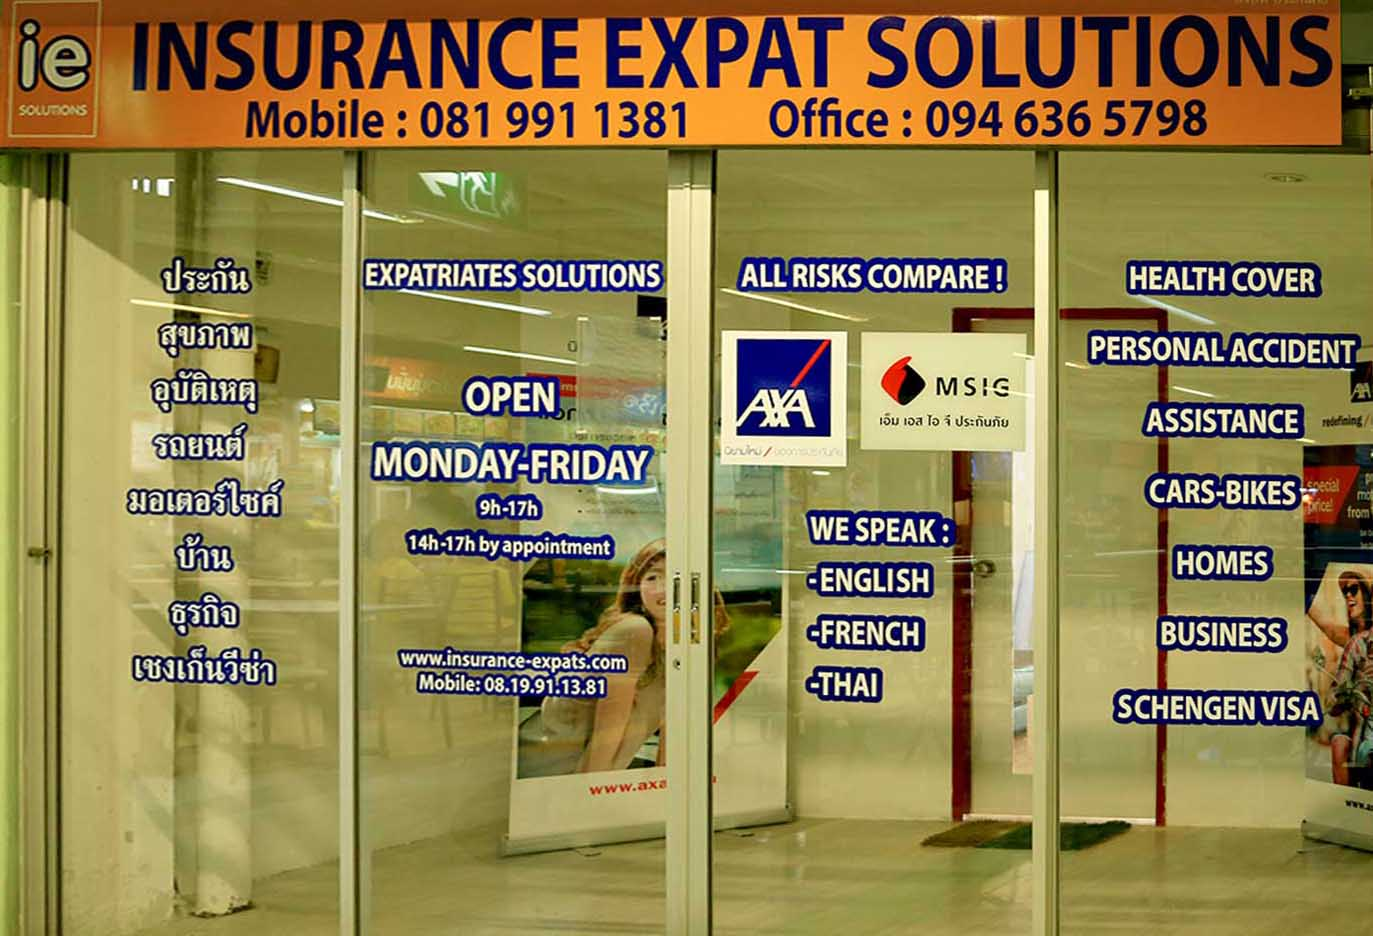 Assurance Chiang Mai, Thailande, Asie - IE Solutions